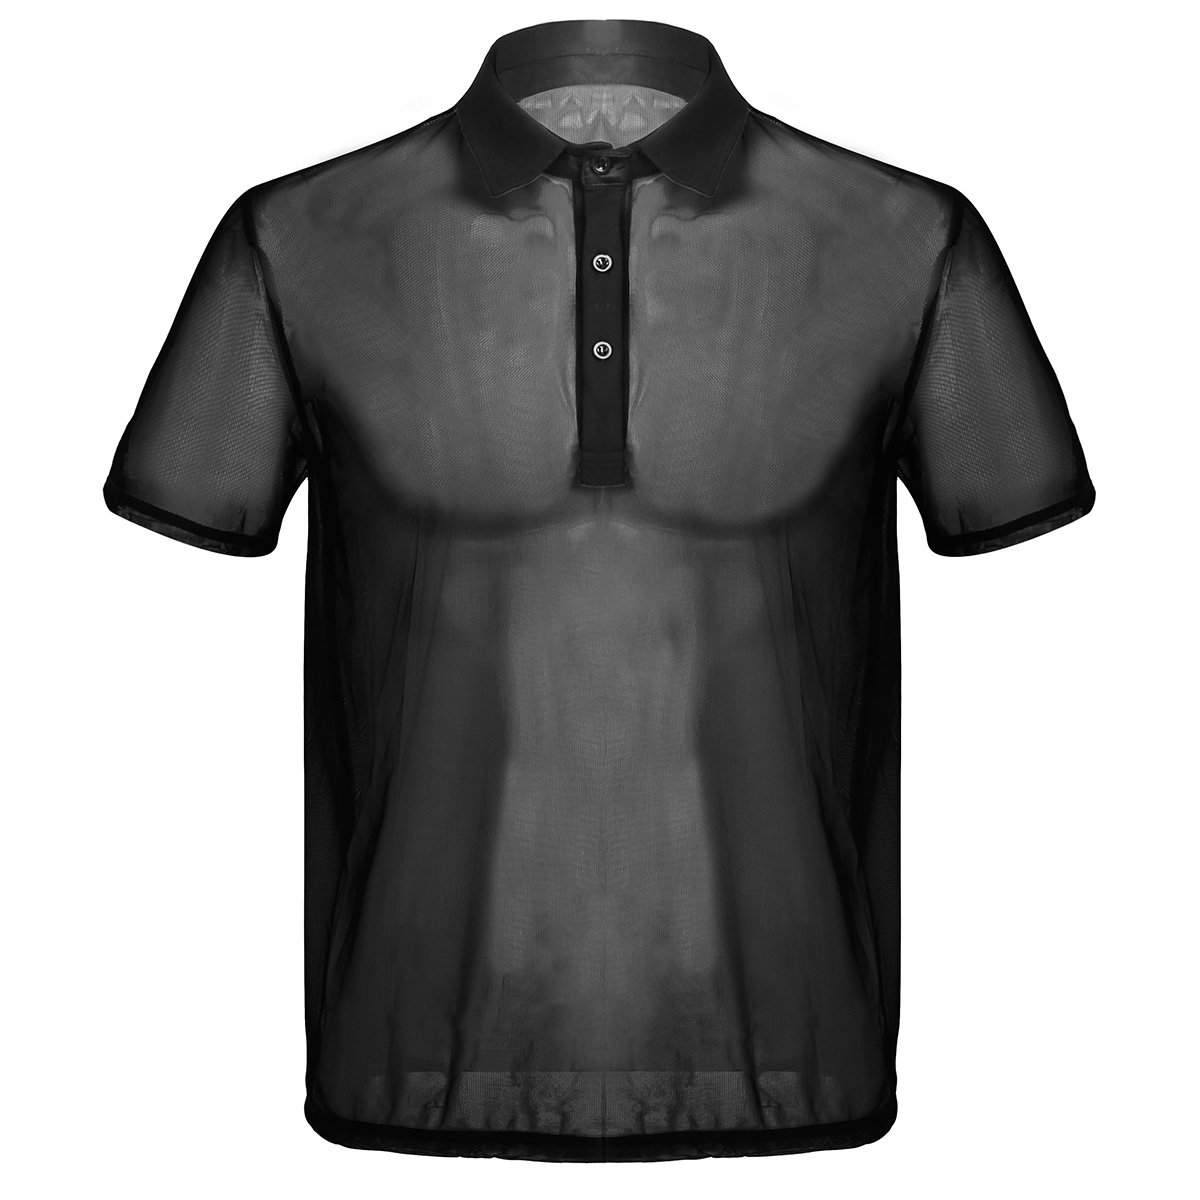 CHICTRY Men's Short Sleeve See Through Mesh Polo T Shirt Clubwear Crop Tops Black X-Large